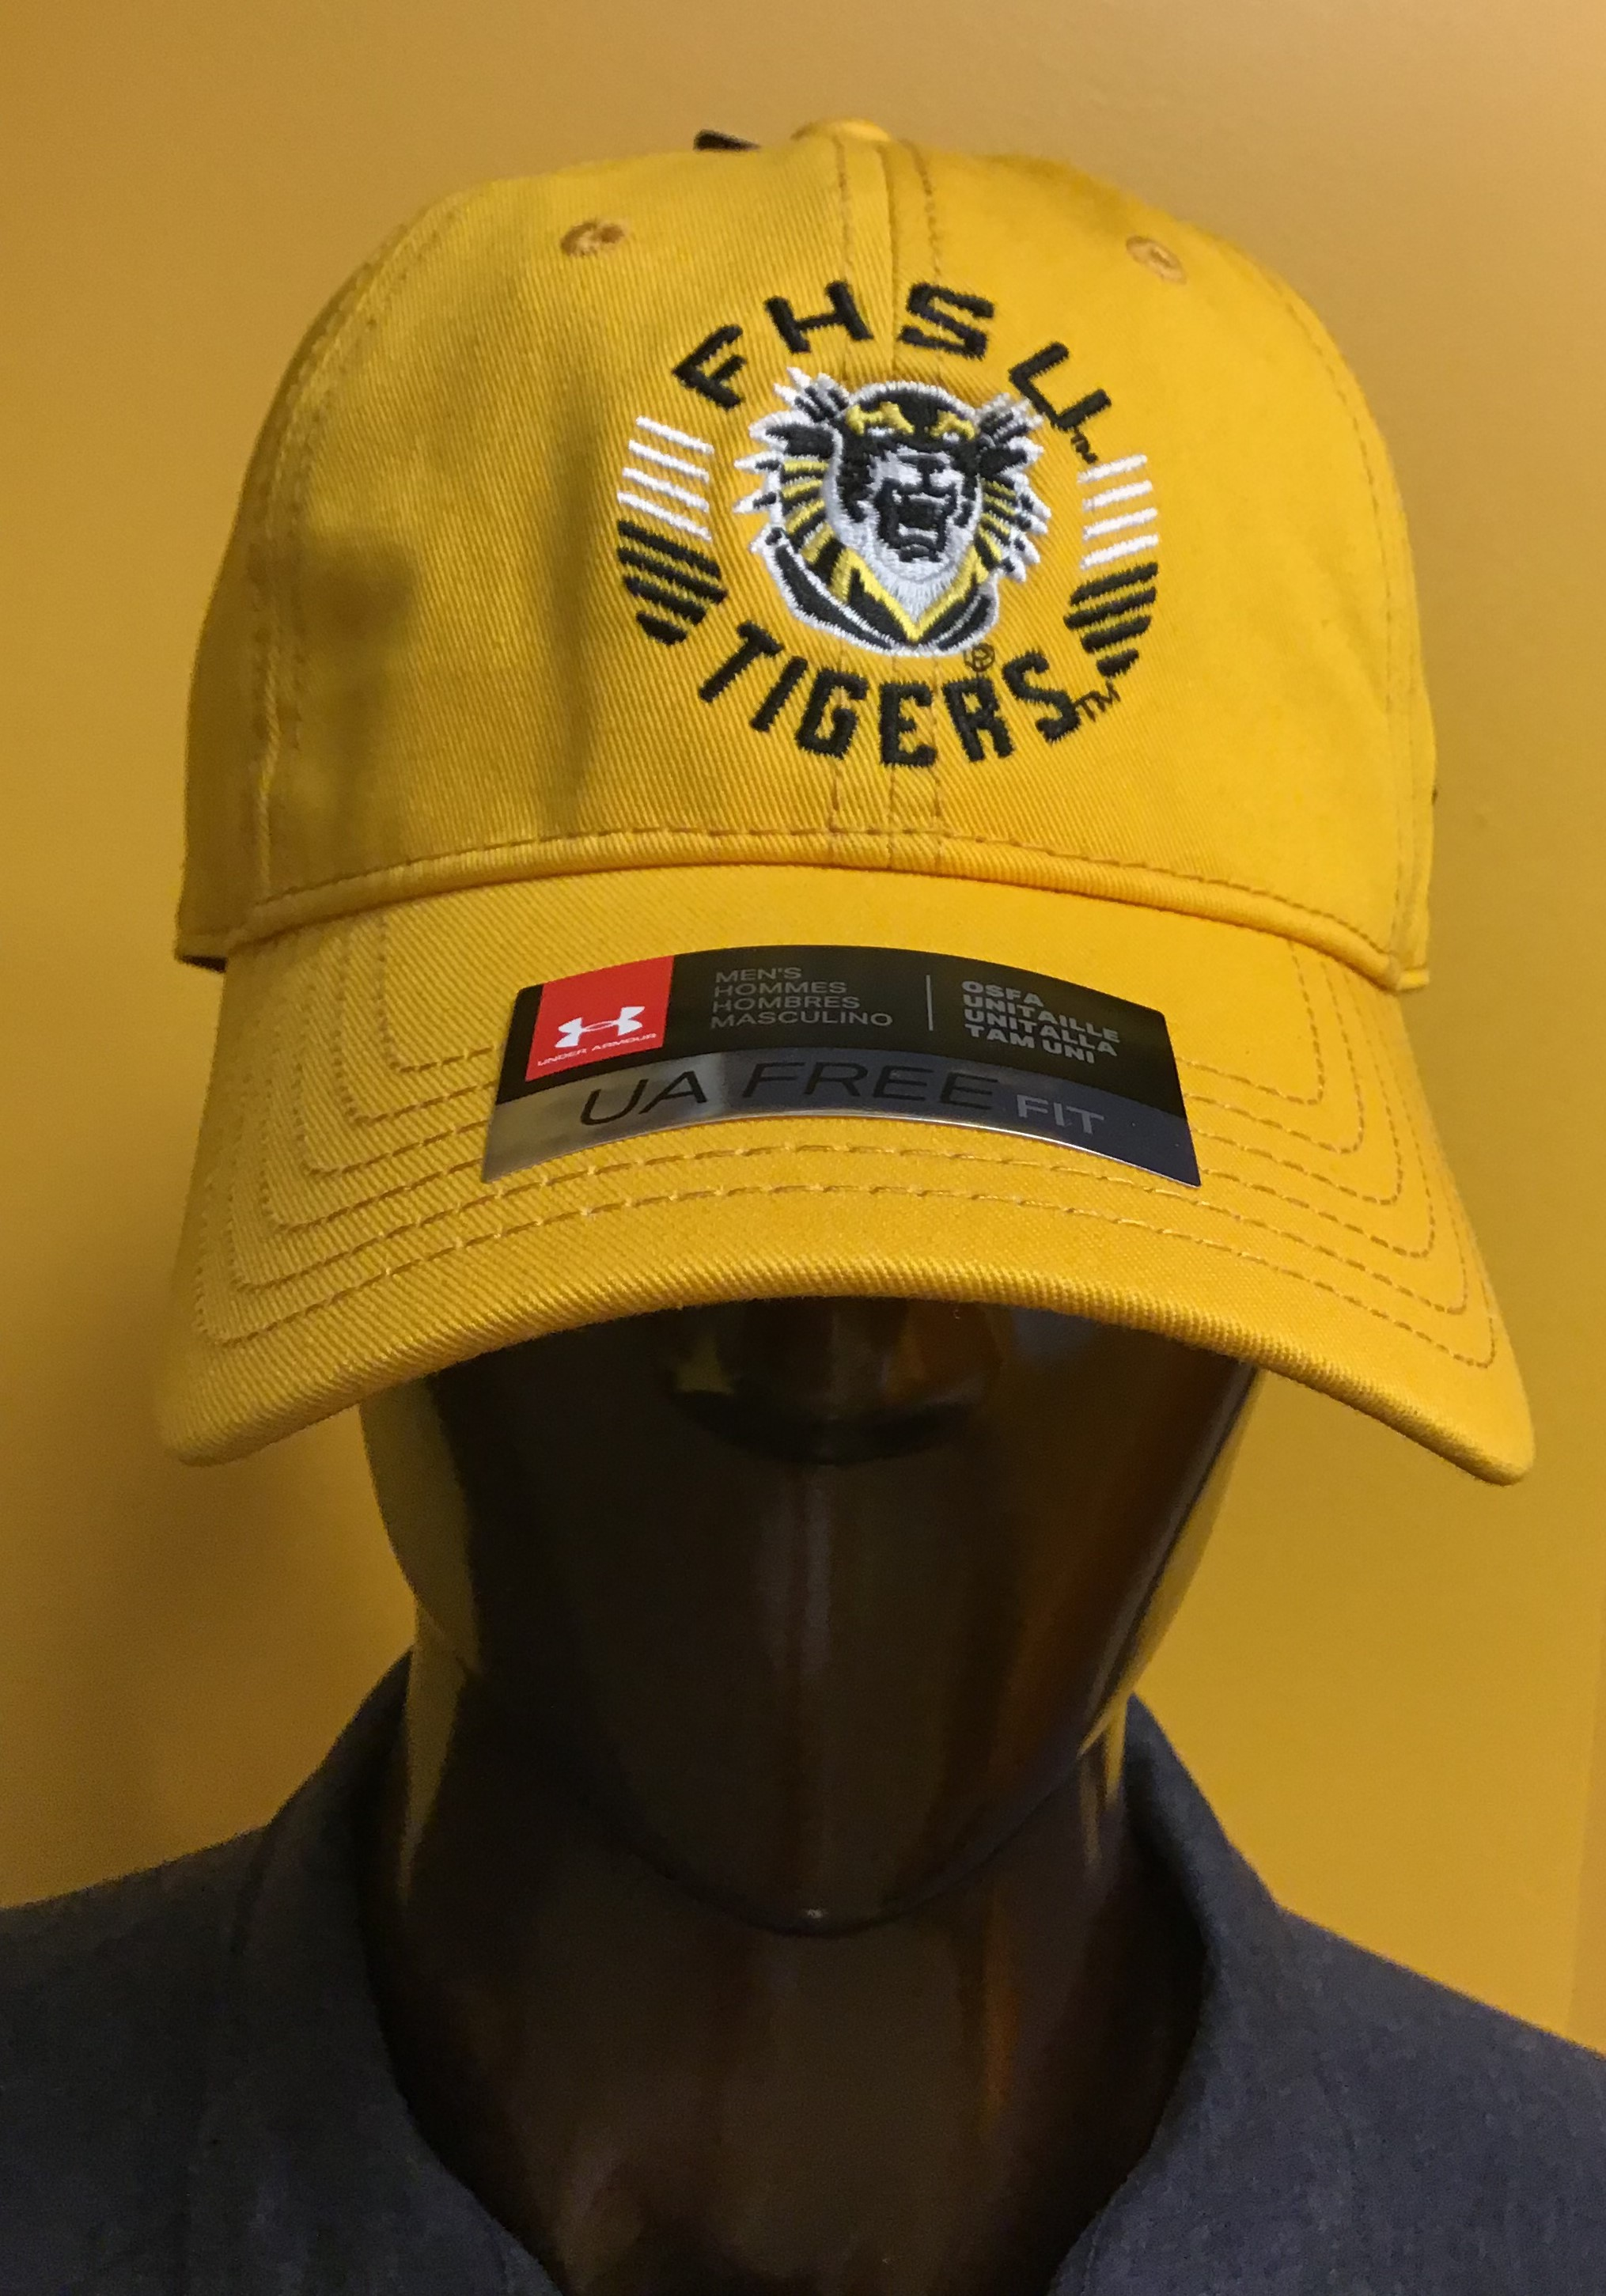 Image for the Hat Classic Fit Garment Washed Twill Gold Under Armour product